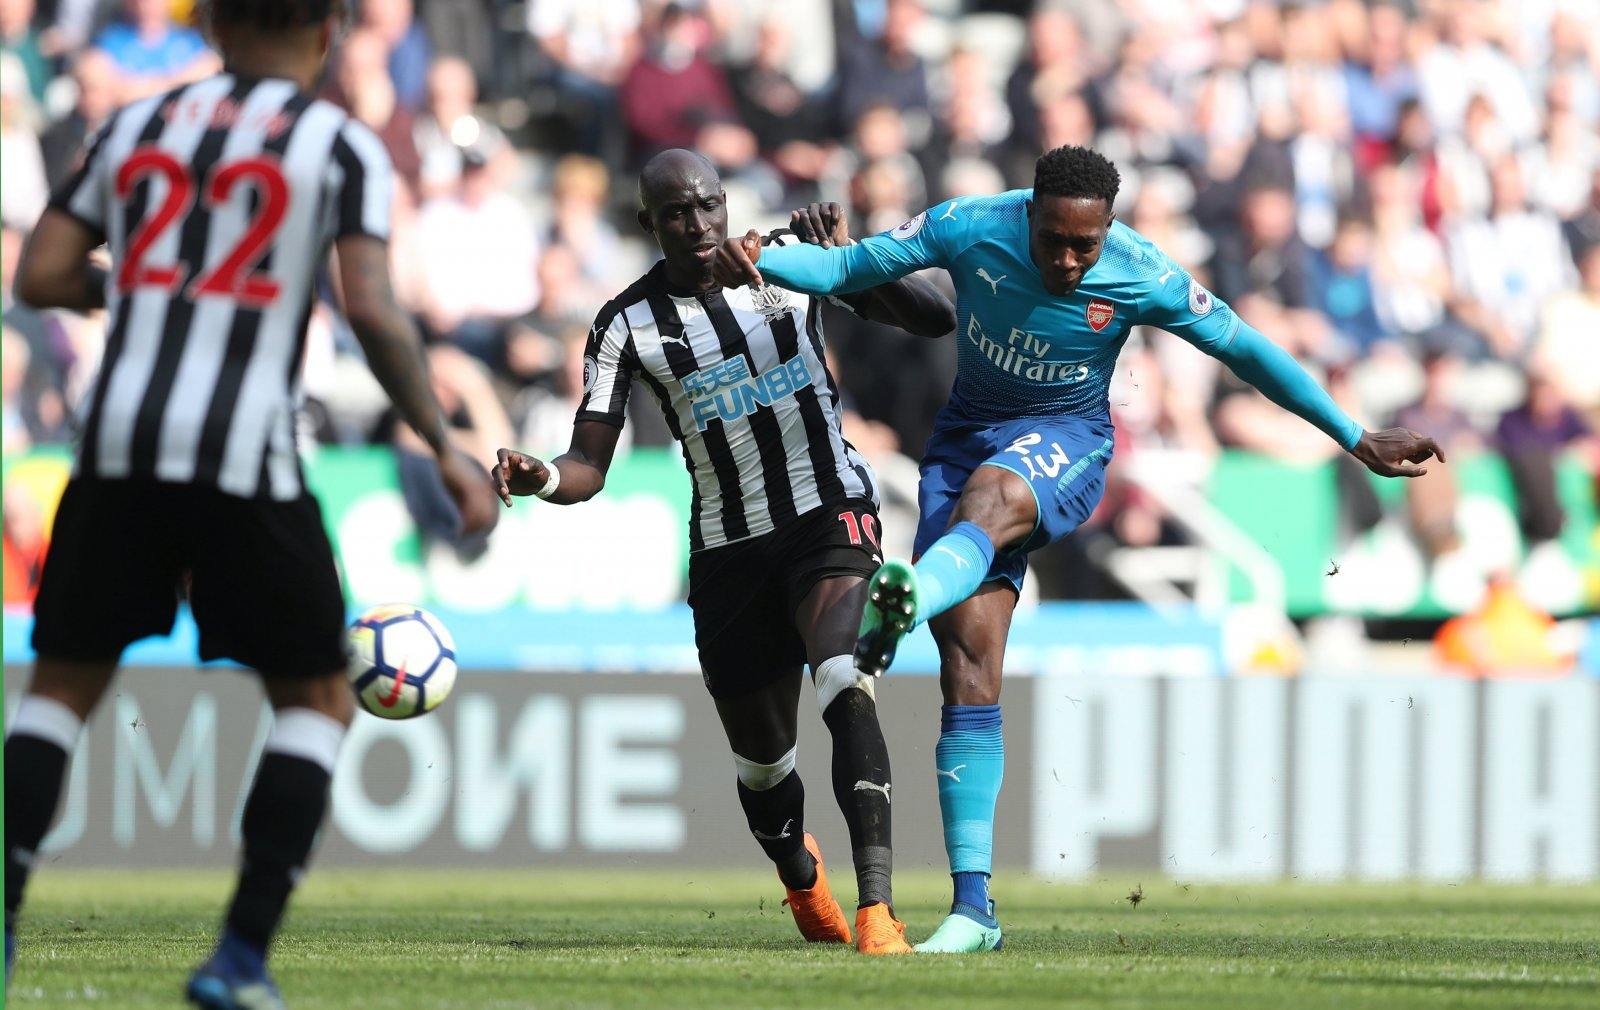 Newcastle fans would urge their club to move for Welbeck this summer